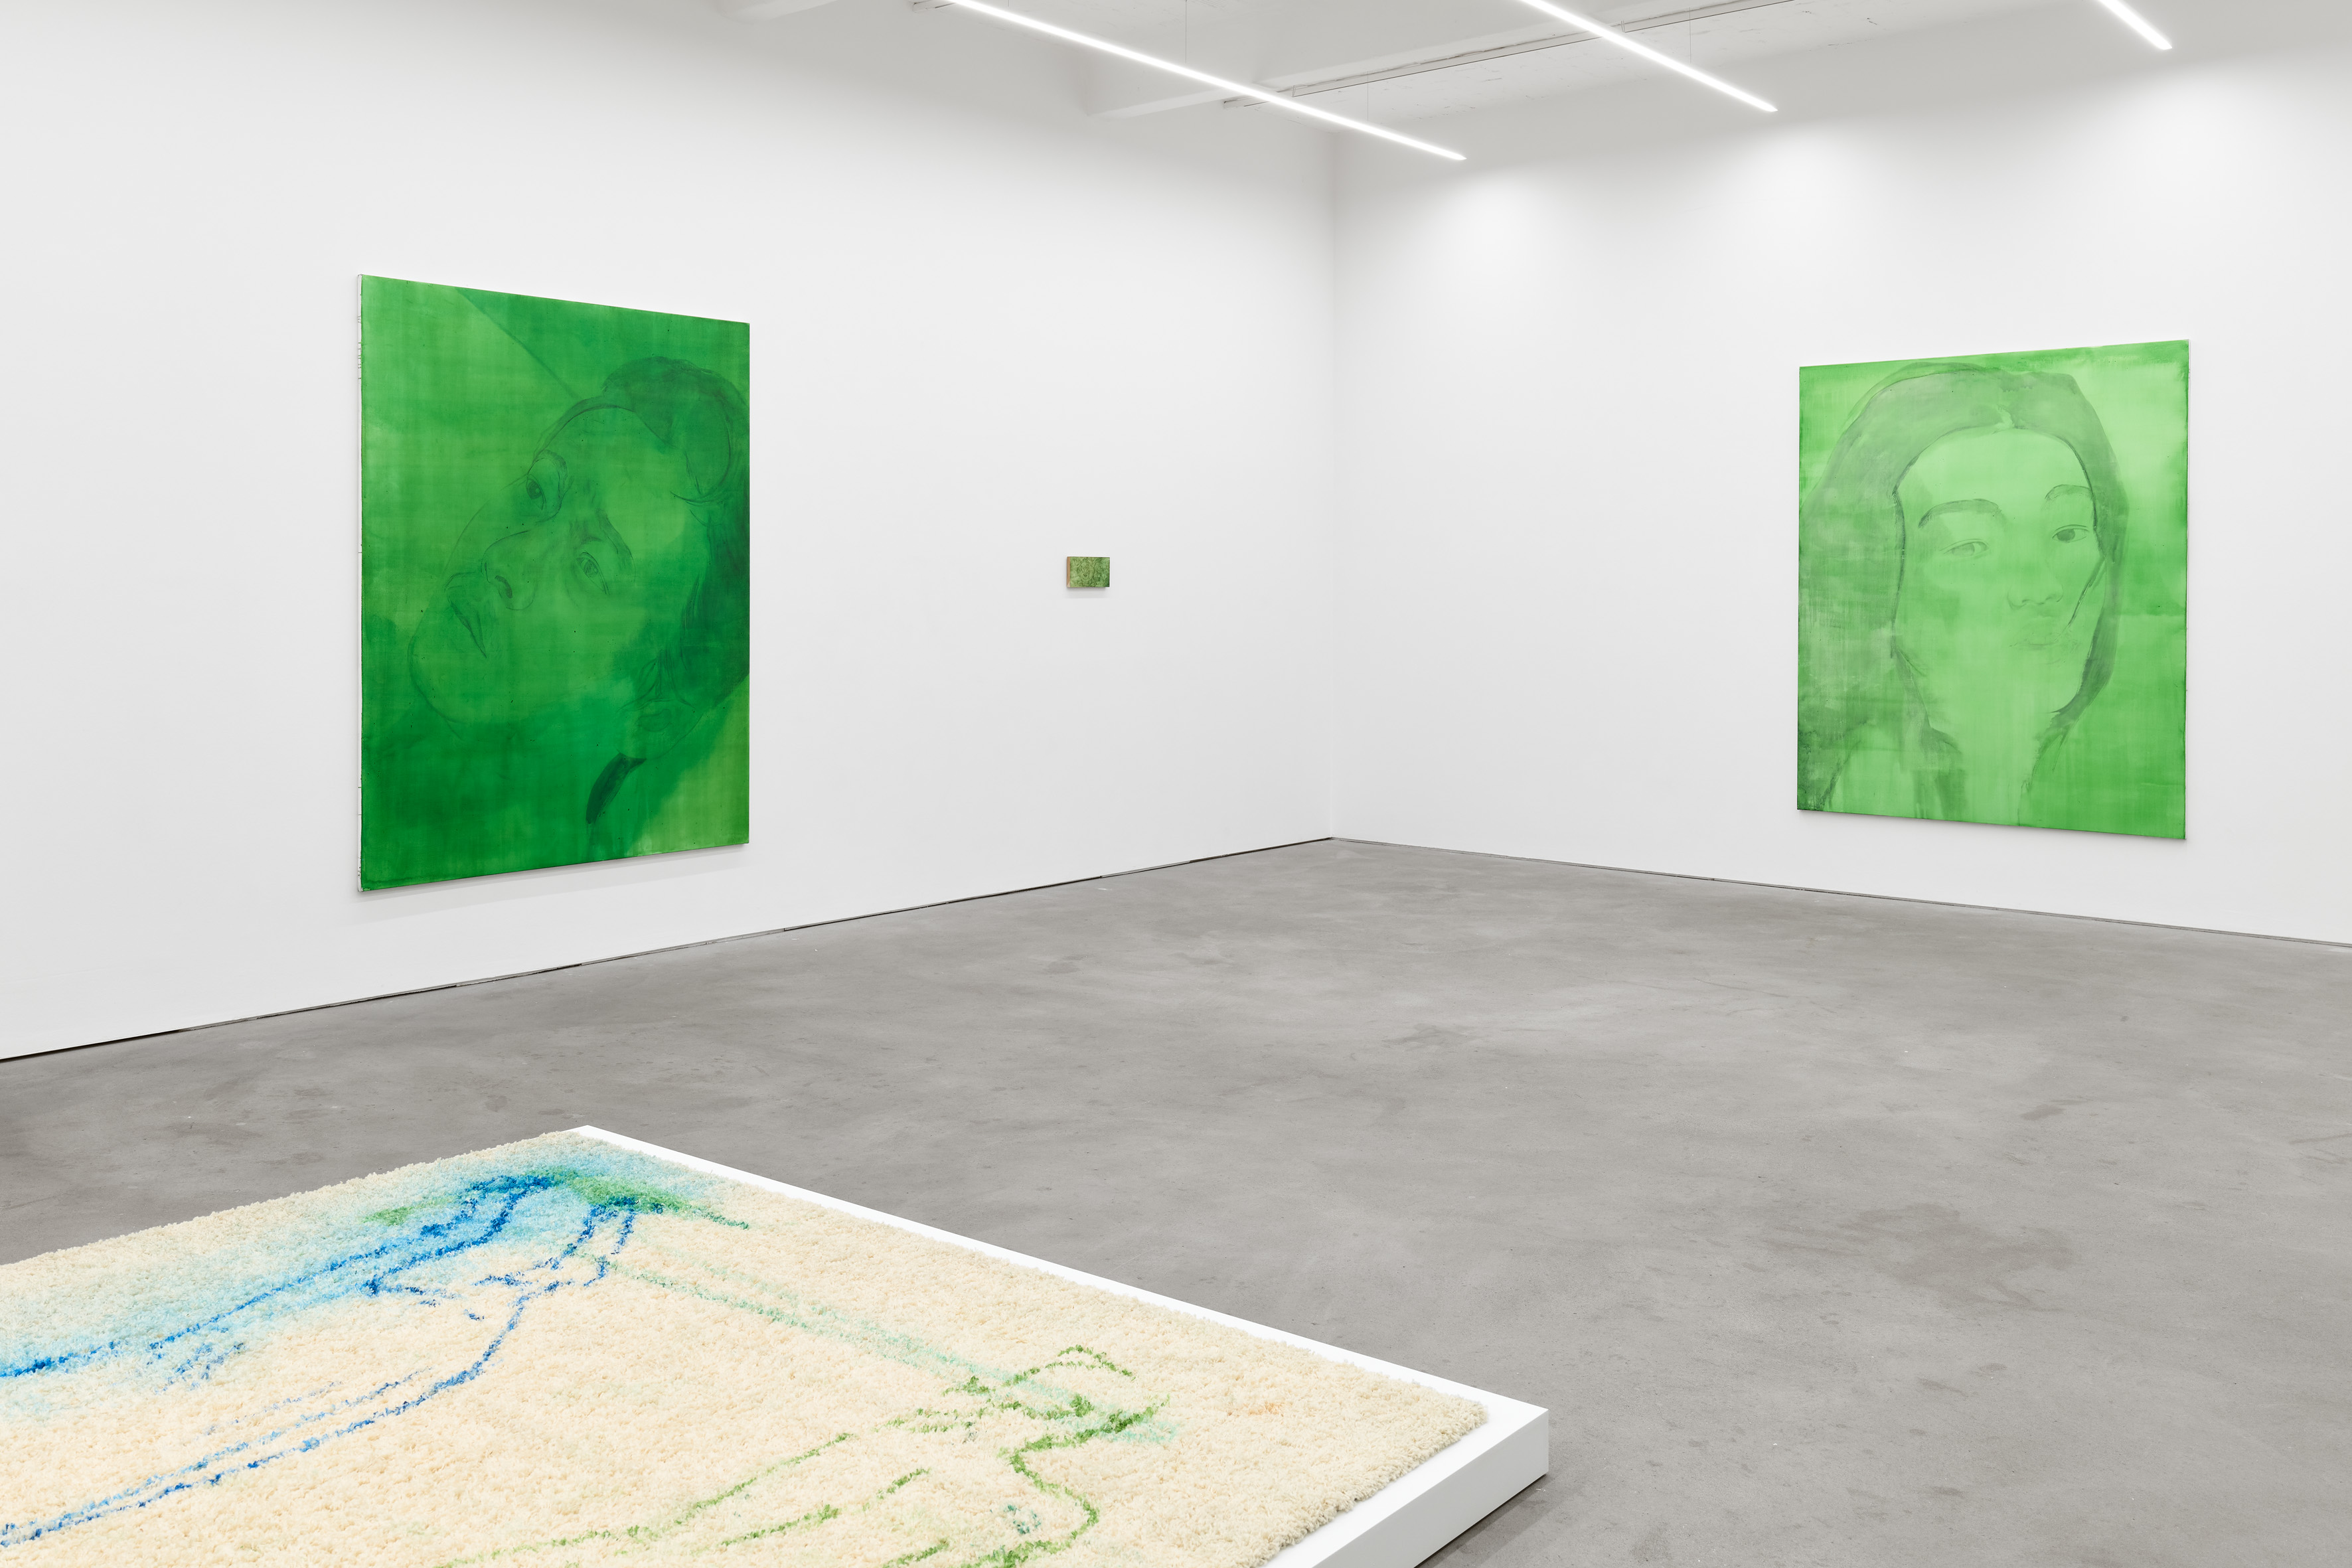 Installation view, 'Fictions' at Kraupa - Tuskany Zeidler. Photo: Stephen Faught, Courtesy the artist; Kraupa - Tuskany Zeidler, Berlin